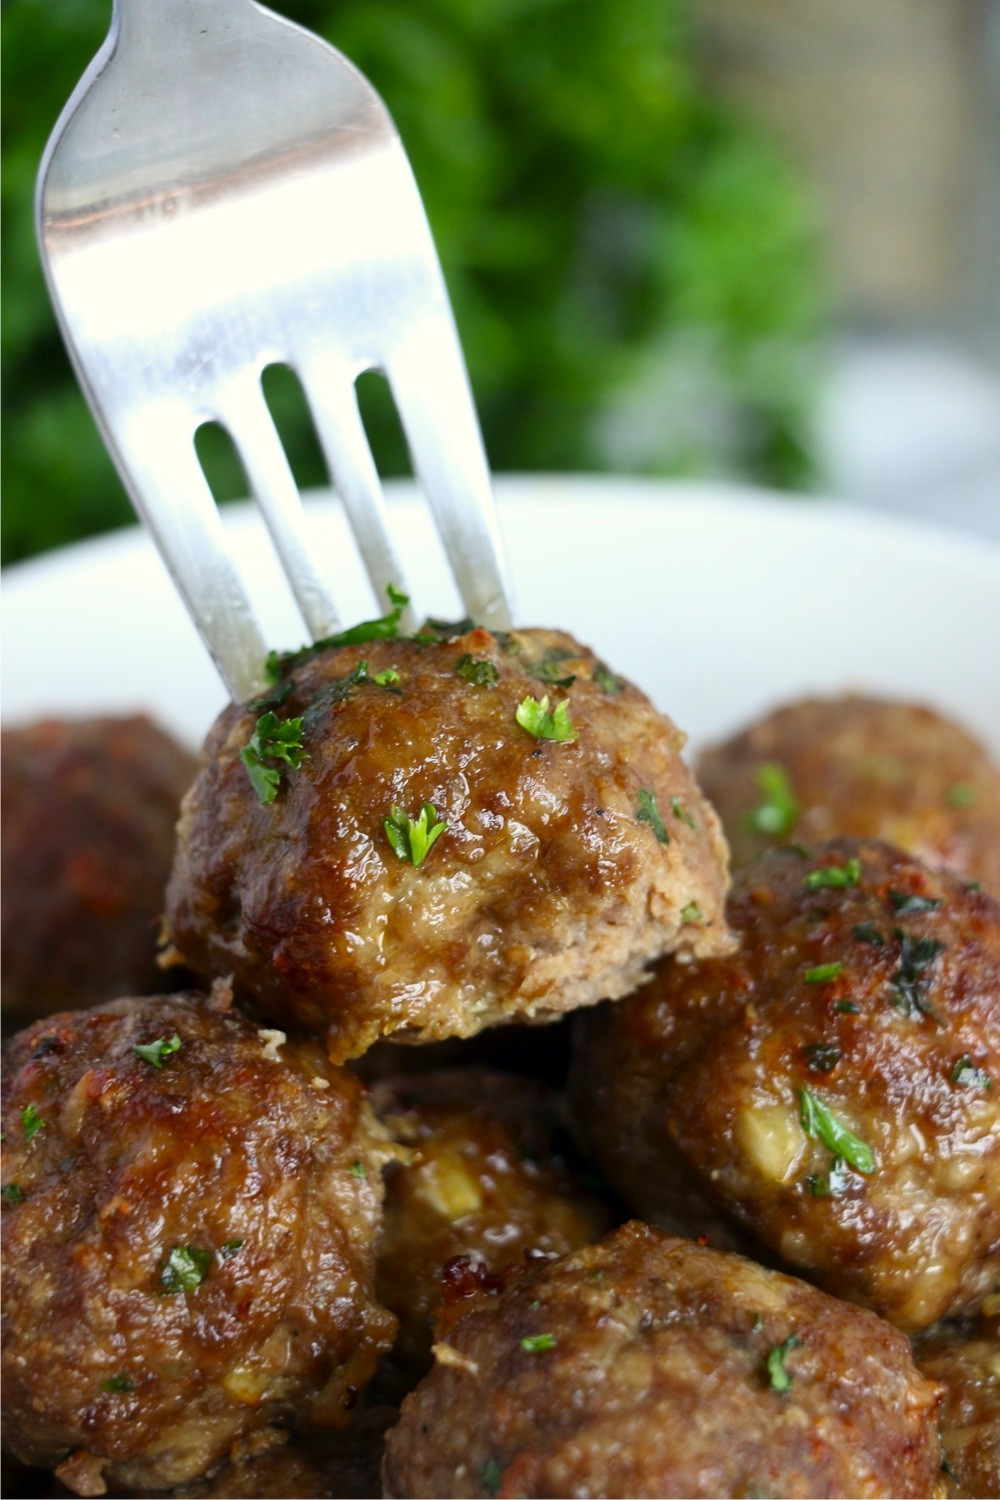 Fork picking up meatball in bowl